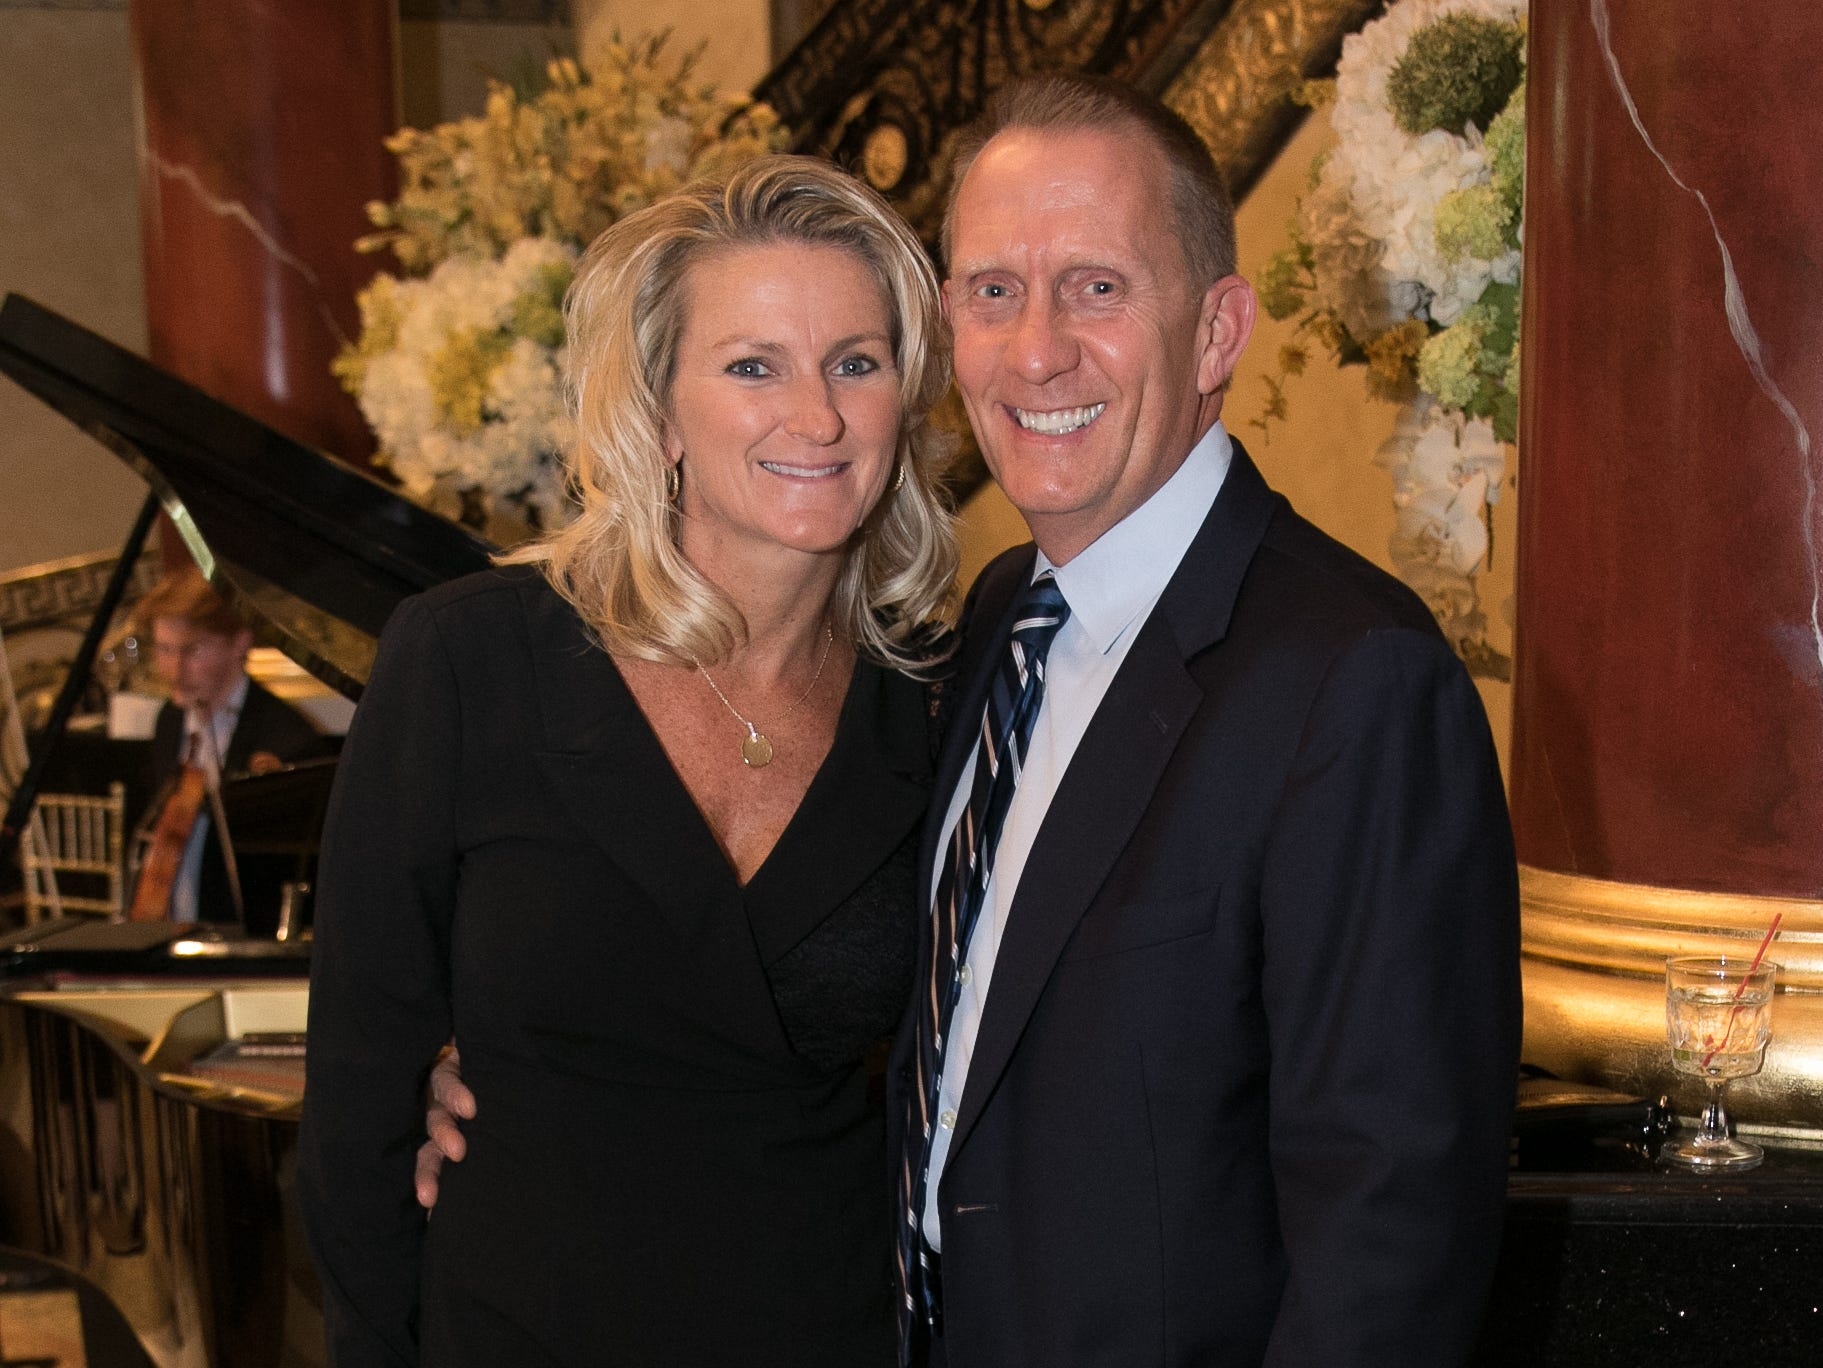 Lori and John Coolong. Don Bosco Prep held it's 17th Annual President's Gala at The Venitian in Garfield, NJ. 10/25/2018